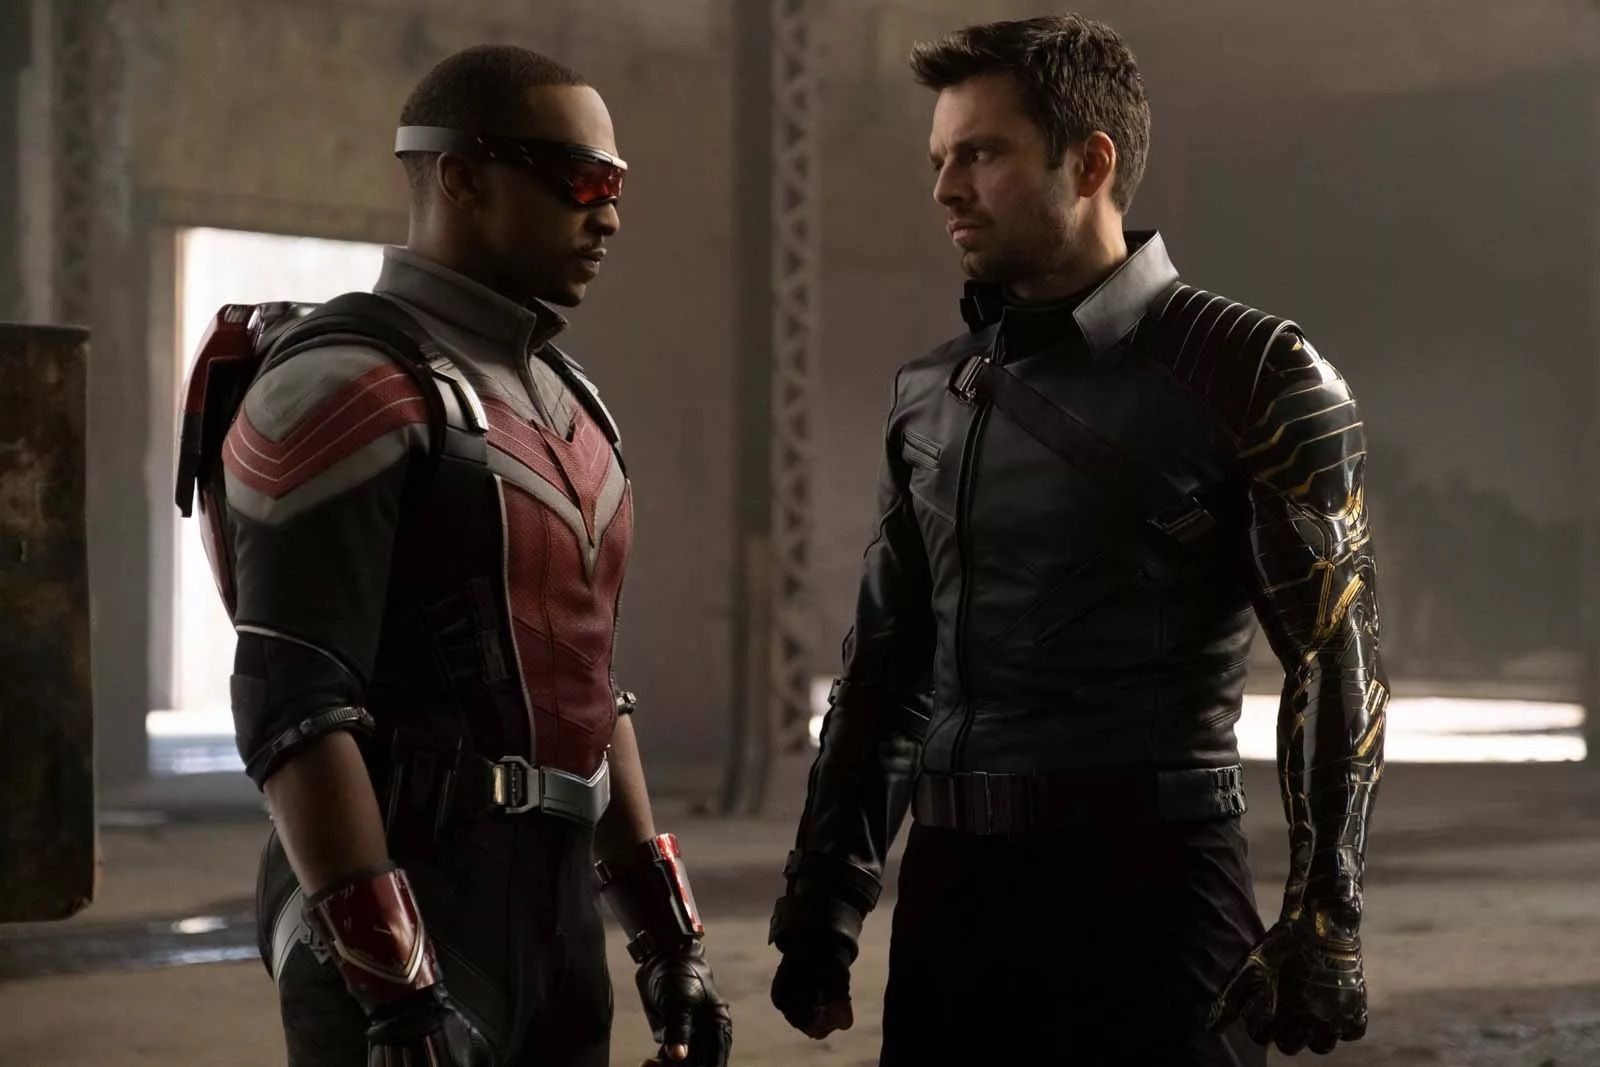 Marvel Releases its Second Show, The Falcon and The Winter Soldier, on Disney+